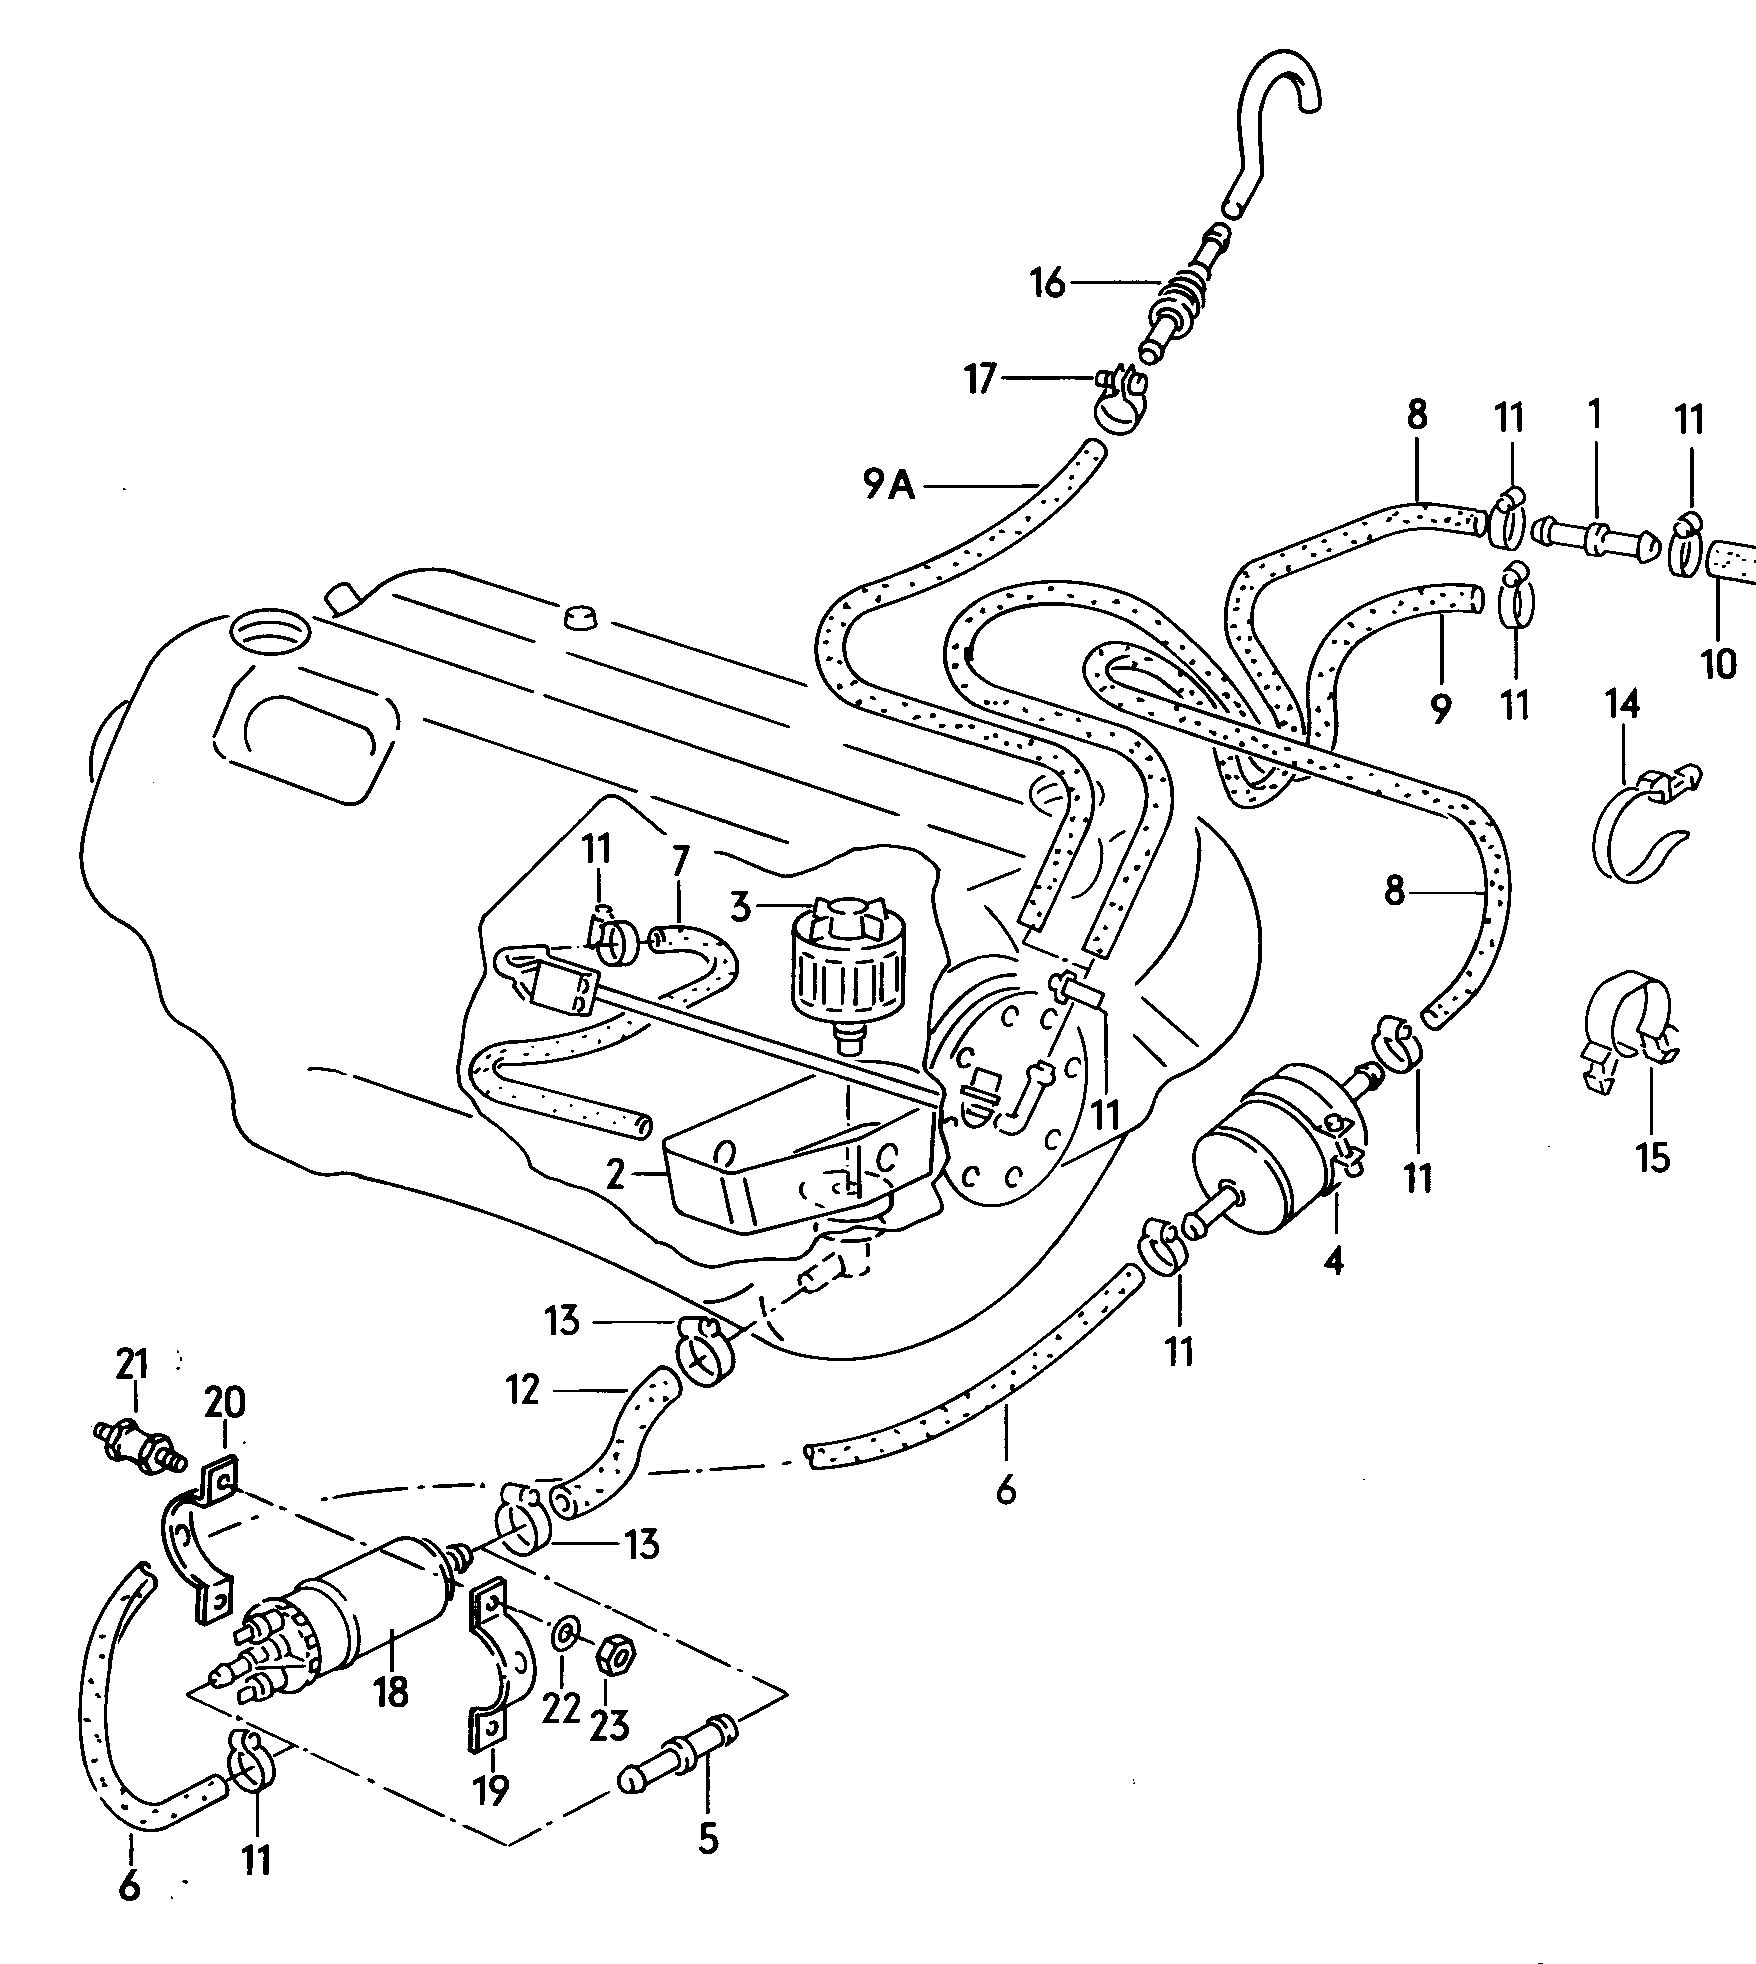 1982 Vw Vanagon Engine Diagram Wiring Library Air Cooled